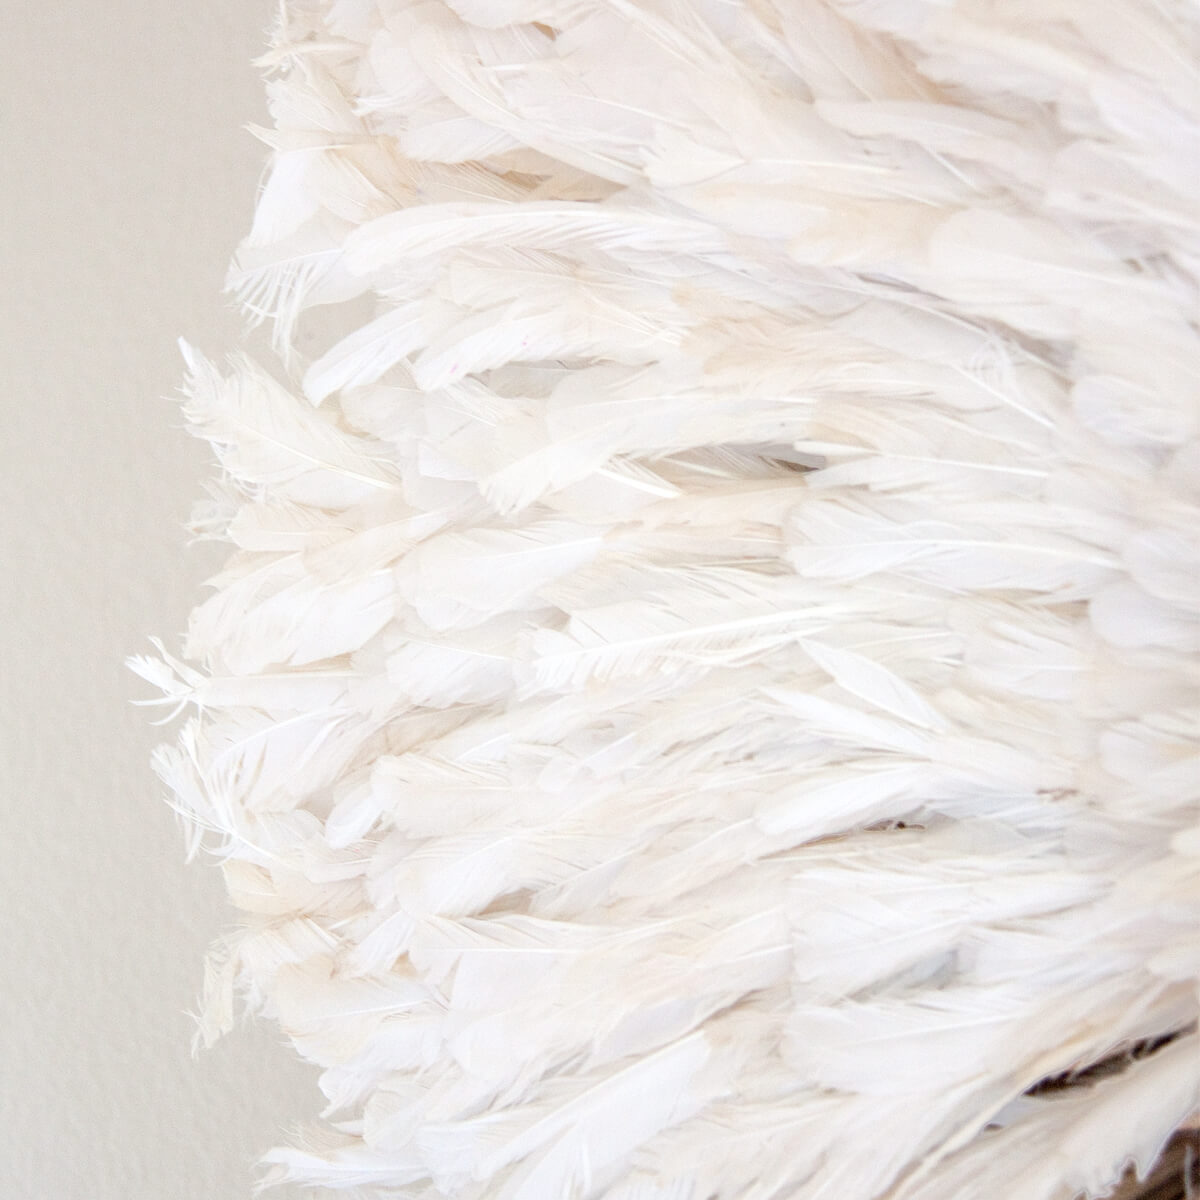 Detail of the feathers on the edges of an Authentic African Juju hat in creamy white natural feathers